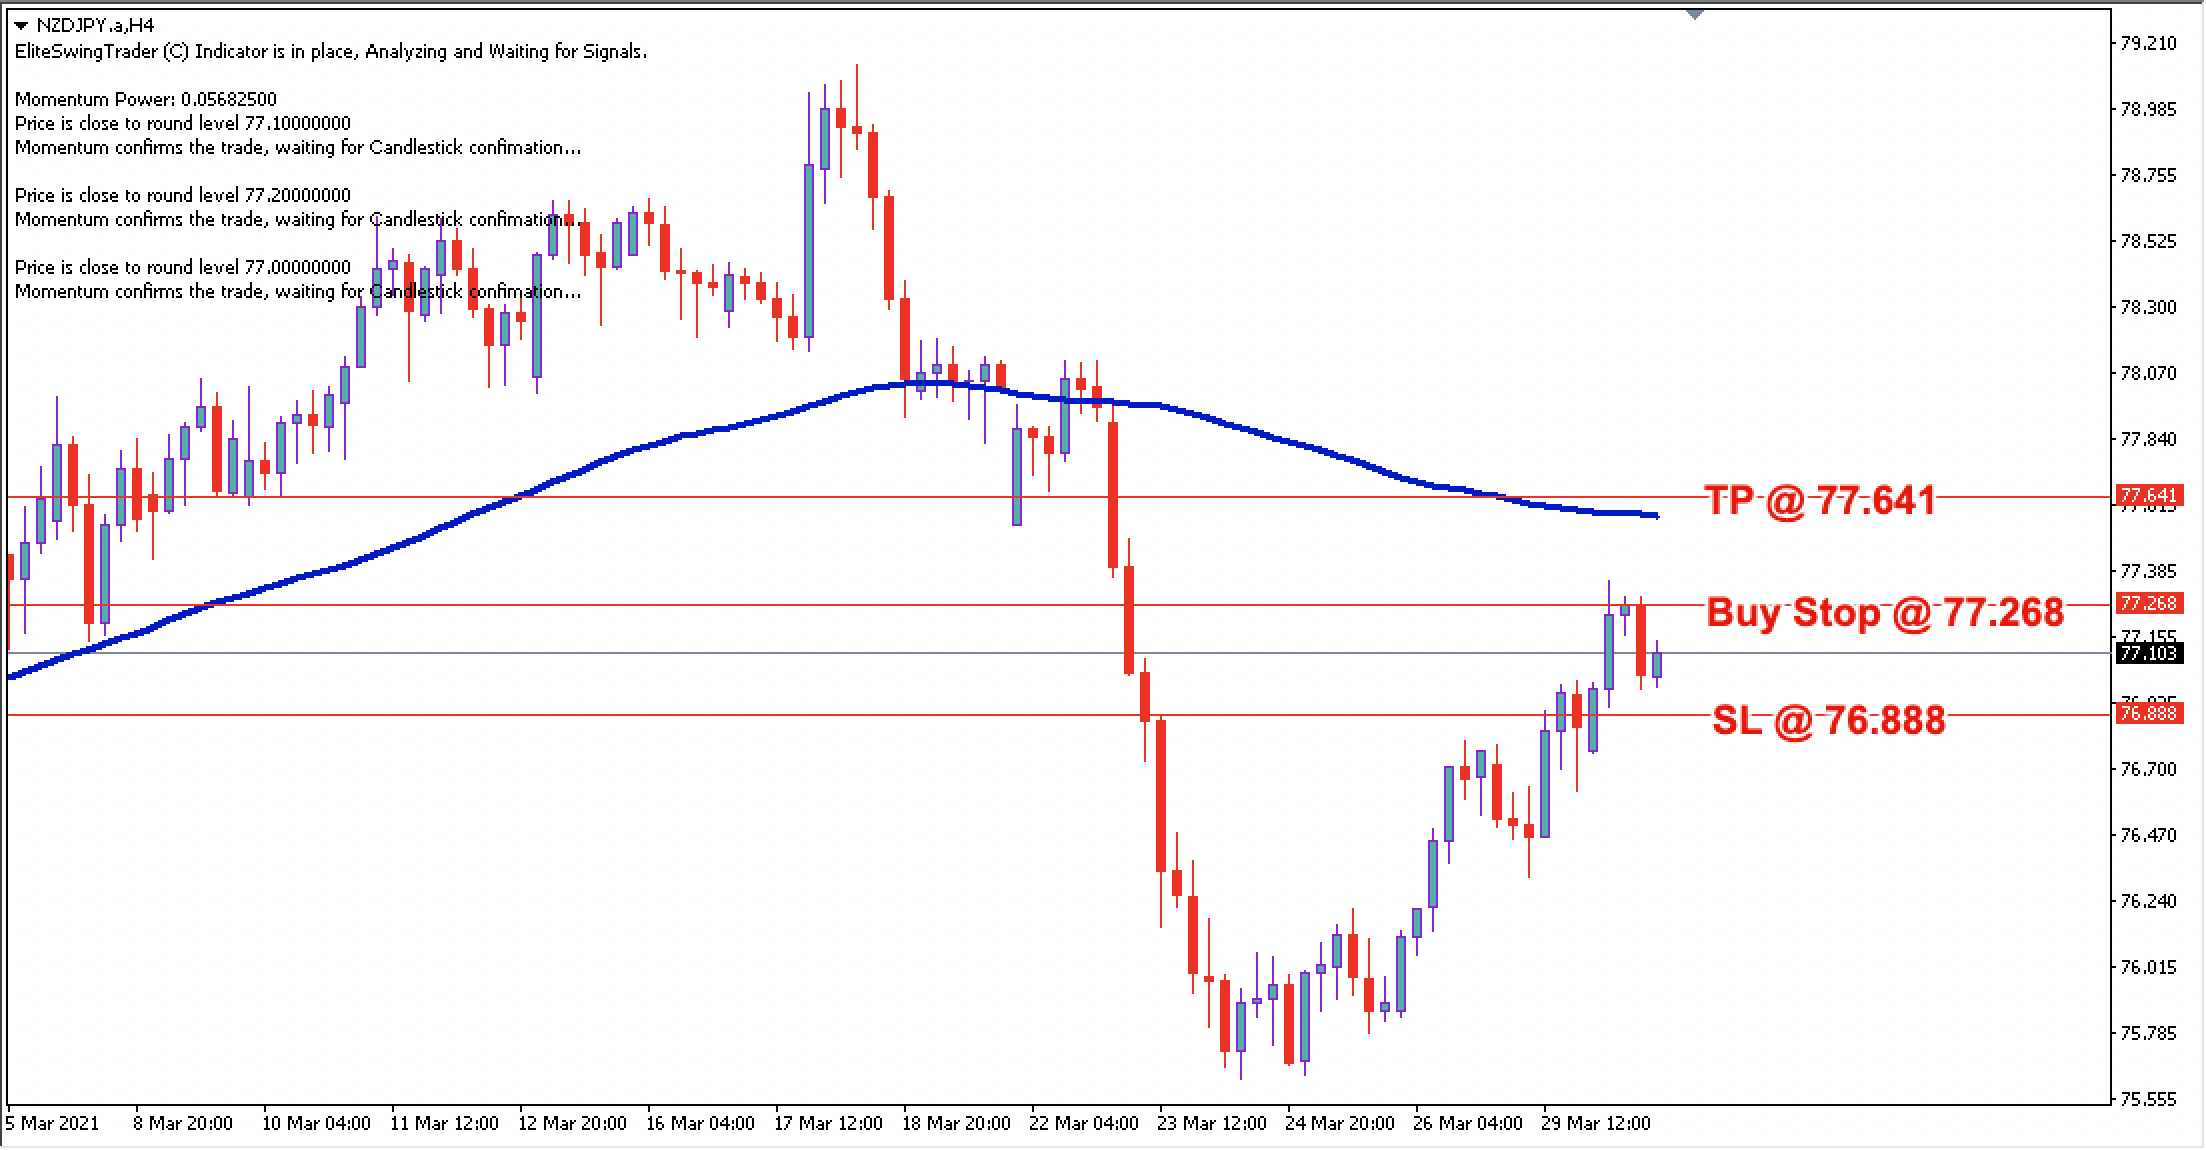 NZD/JPY Daily Price Forecast - 30th March 2021